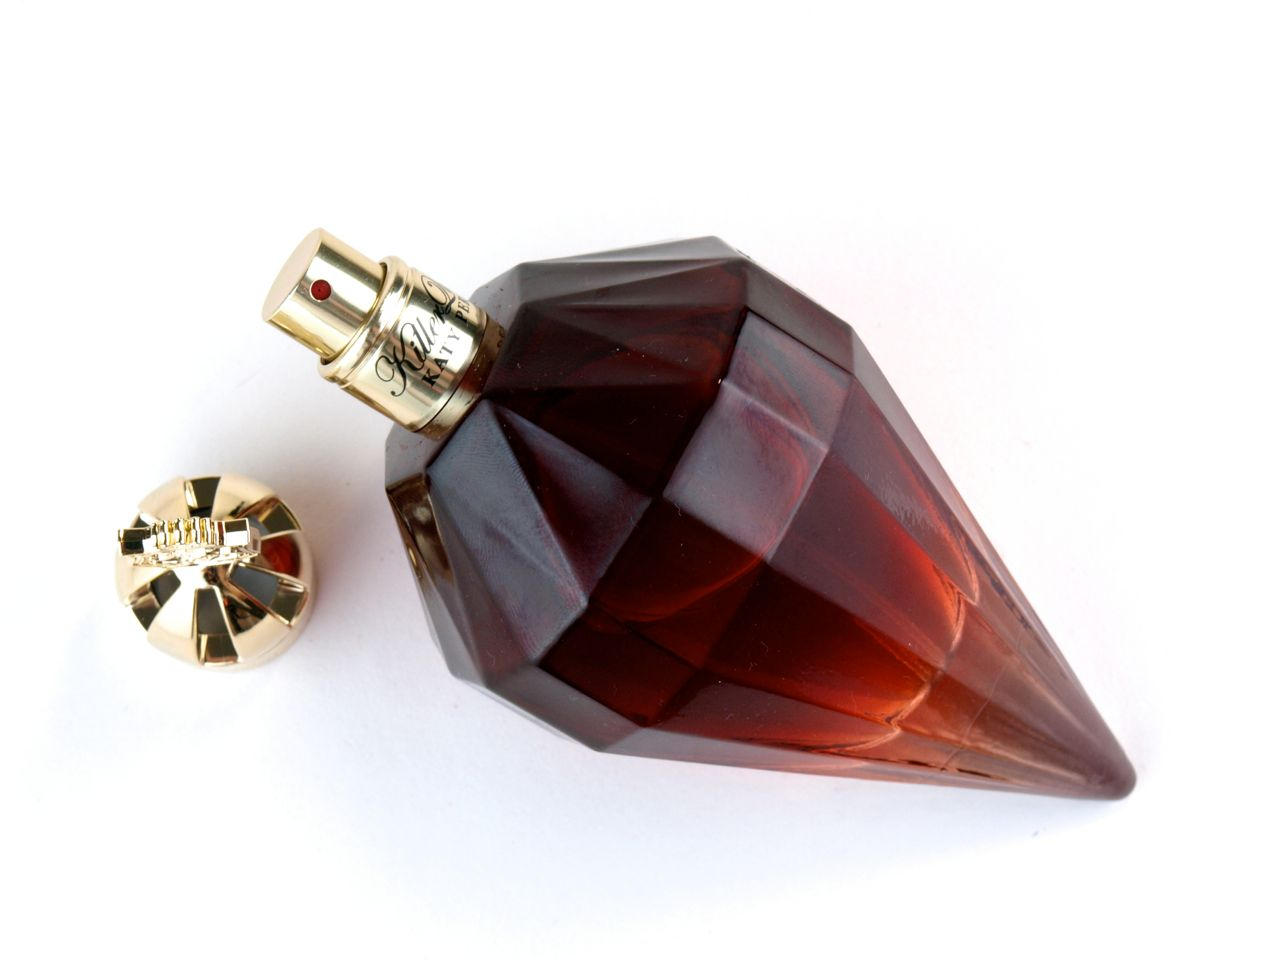 Killer Queen Katy Perry Eau de Parfum: Review